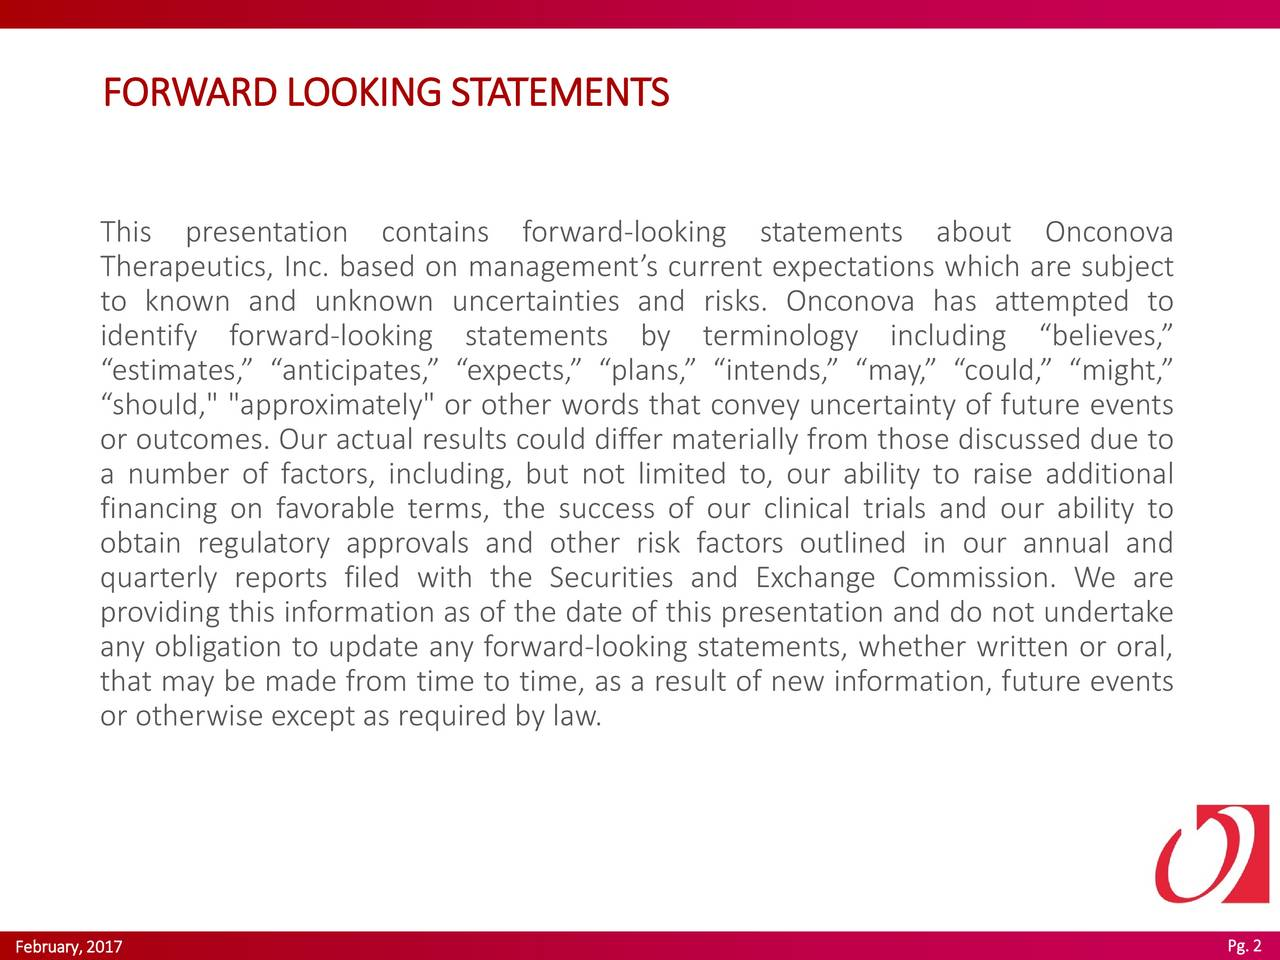 """This presentation contains forward-looking statements about Onconova Therapeutics, Inc. based on managements current expectations which are subject to known and unknown uncertainties and risks. Onconova has attempted to identify forward-looking statements by terminology including believes, estimates, anticipates, expects, plans, intends, may,could, might, should,"""" """"approximately"""" or other words that convey uncertainty of future events or outcomes. Our actual results could differ materially from those discussed due to a number of factors, including, but not limited to, our ability to raise additional financing on favorable terms, the success of our clinical trials and our ability to obtain regulatory approvals and other risk factors outlined in our annual and quarterly reports filed with the Securities and Exchange Commission. We are providing this information as of the date of this presentation and do not undertake any obligation to update any forward-looking statements, whether written or oral, that may be made from time to time, as a result of new information, future events or otherwise exceptas required by law."""